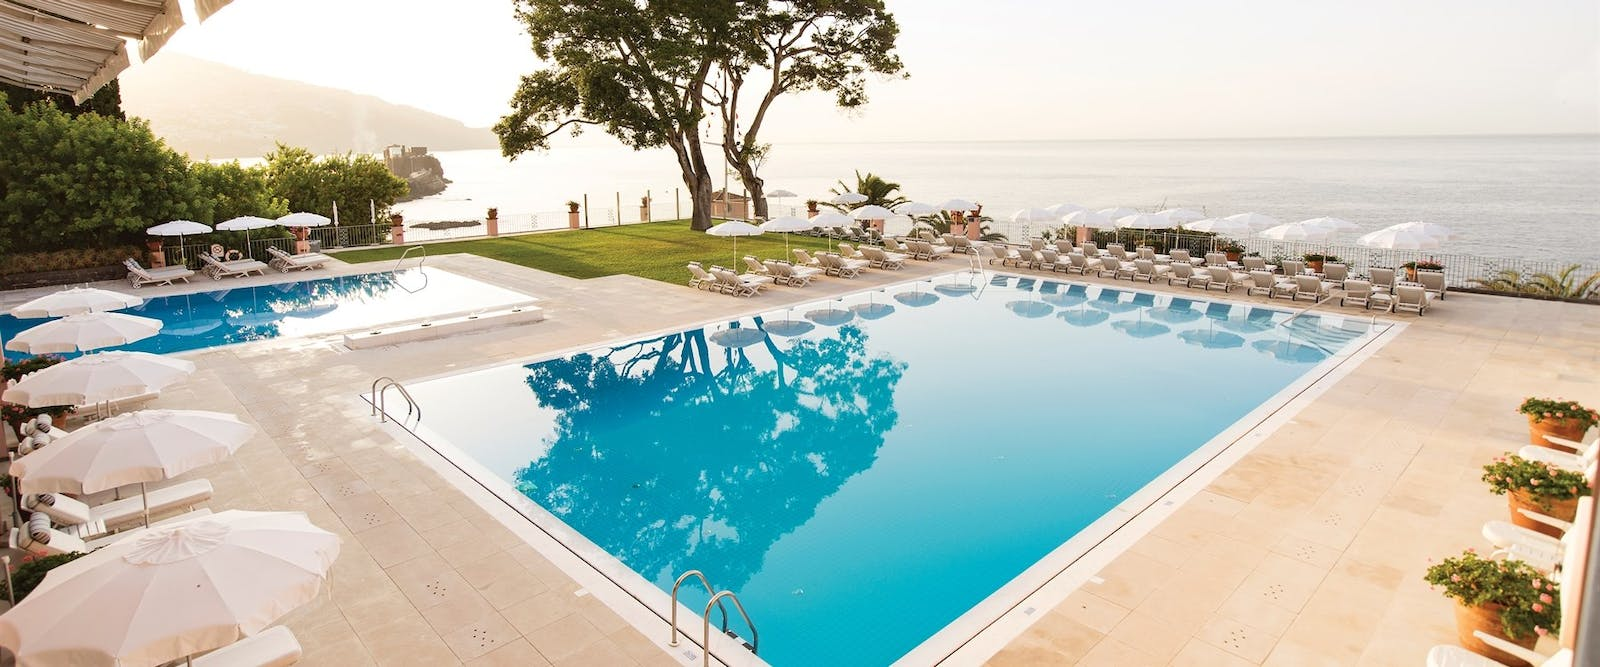 Outdoor Swimming Pool at Reid's Palace, A Belmond Hotel, Madeira, Portugal